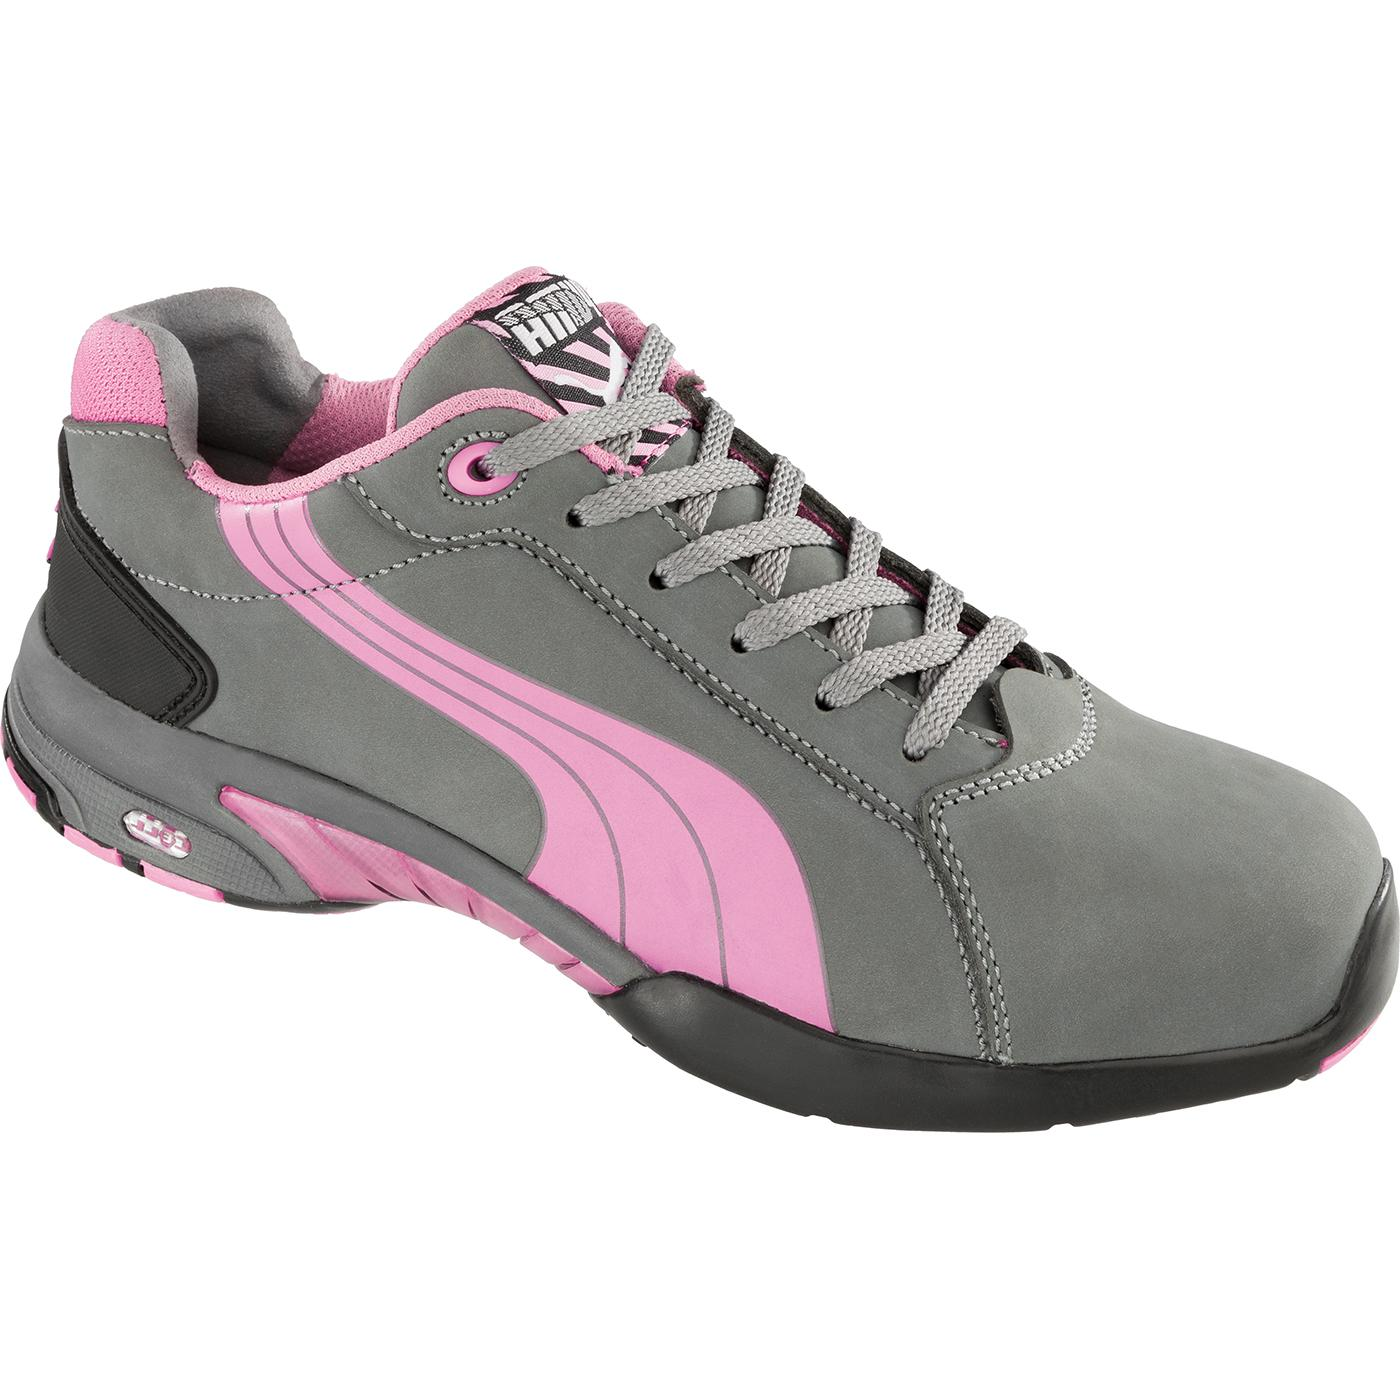 Puma Miss Safety Balance Women s Steel Toe Static-Dissipative Work Athletic  Shoe a07b1857a